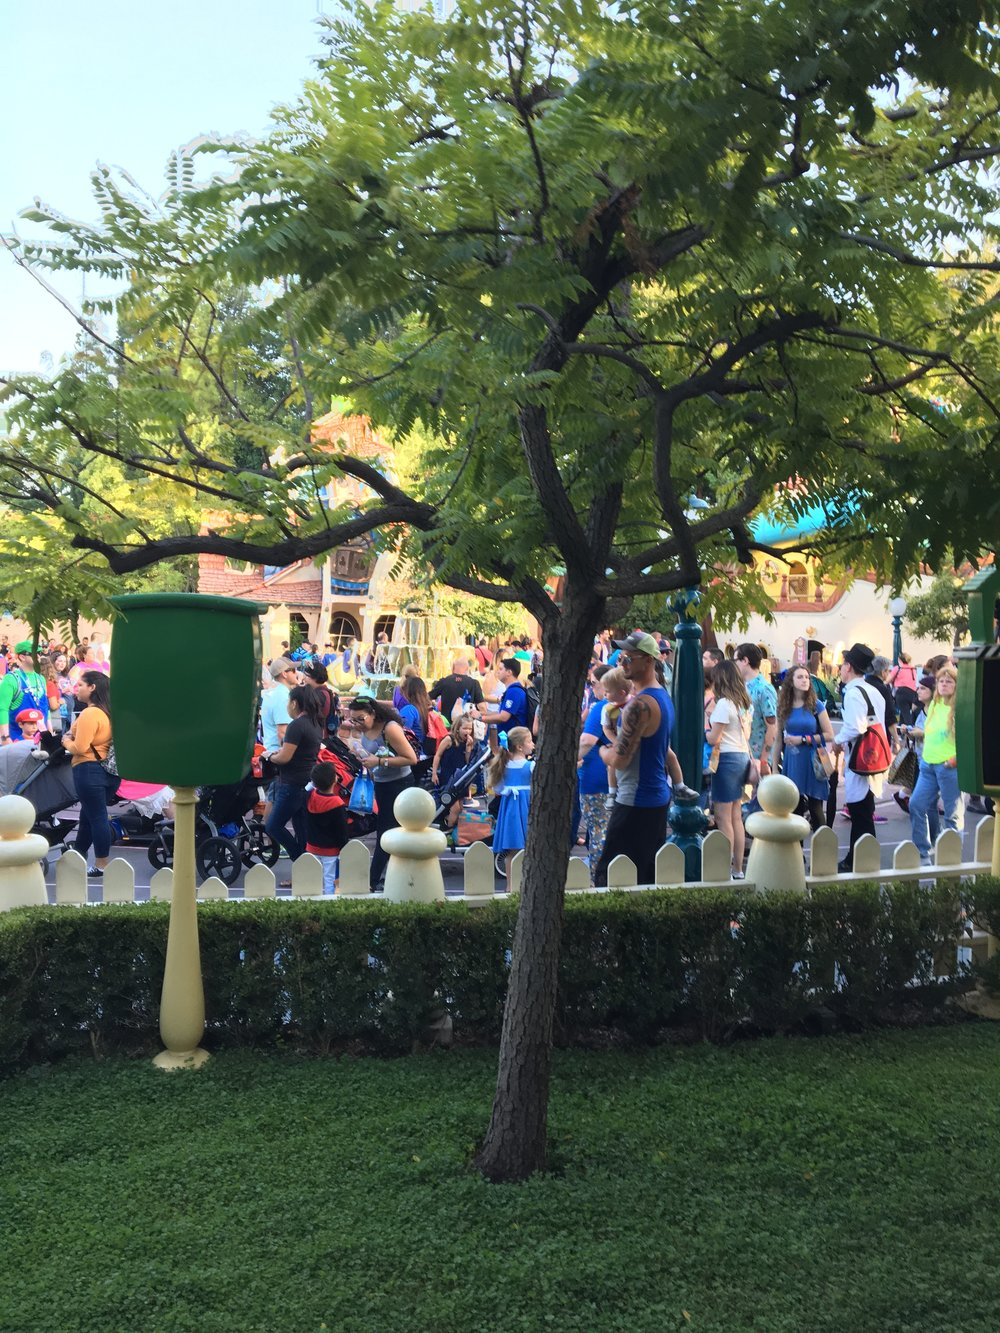 Toontown lines are just too long.